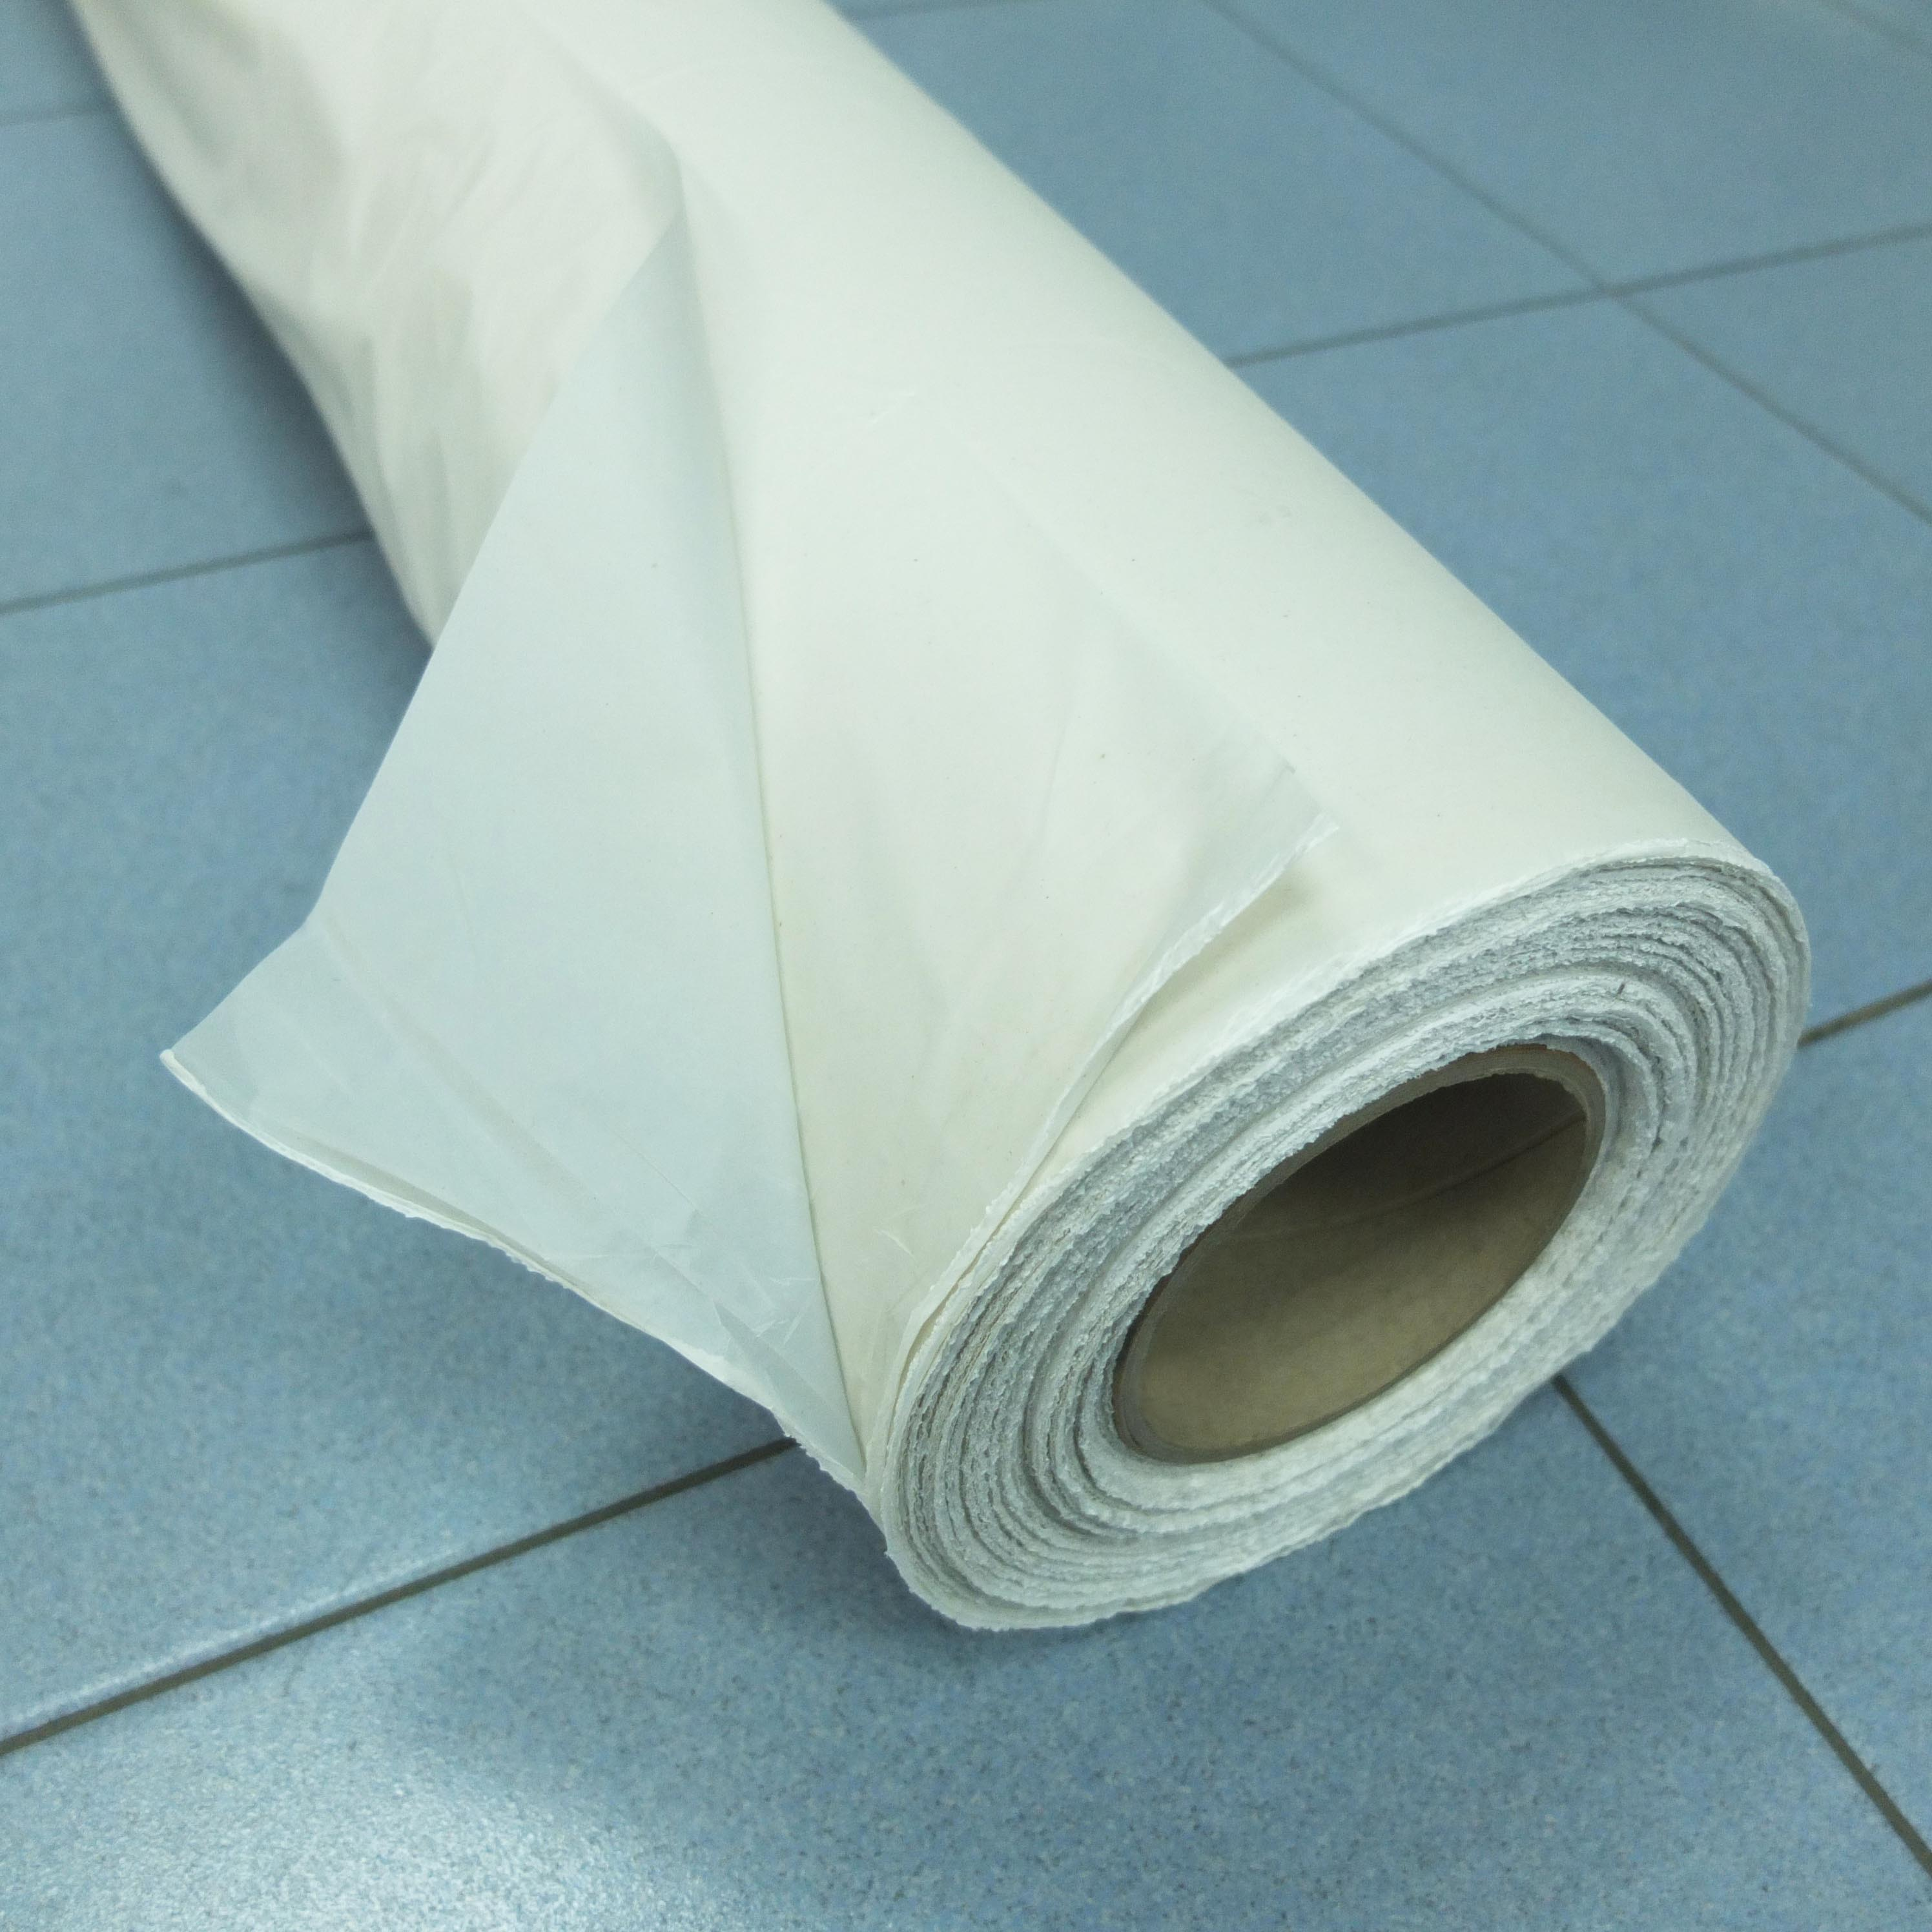 Related product: Polyethylene Sheet / PE Sheet